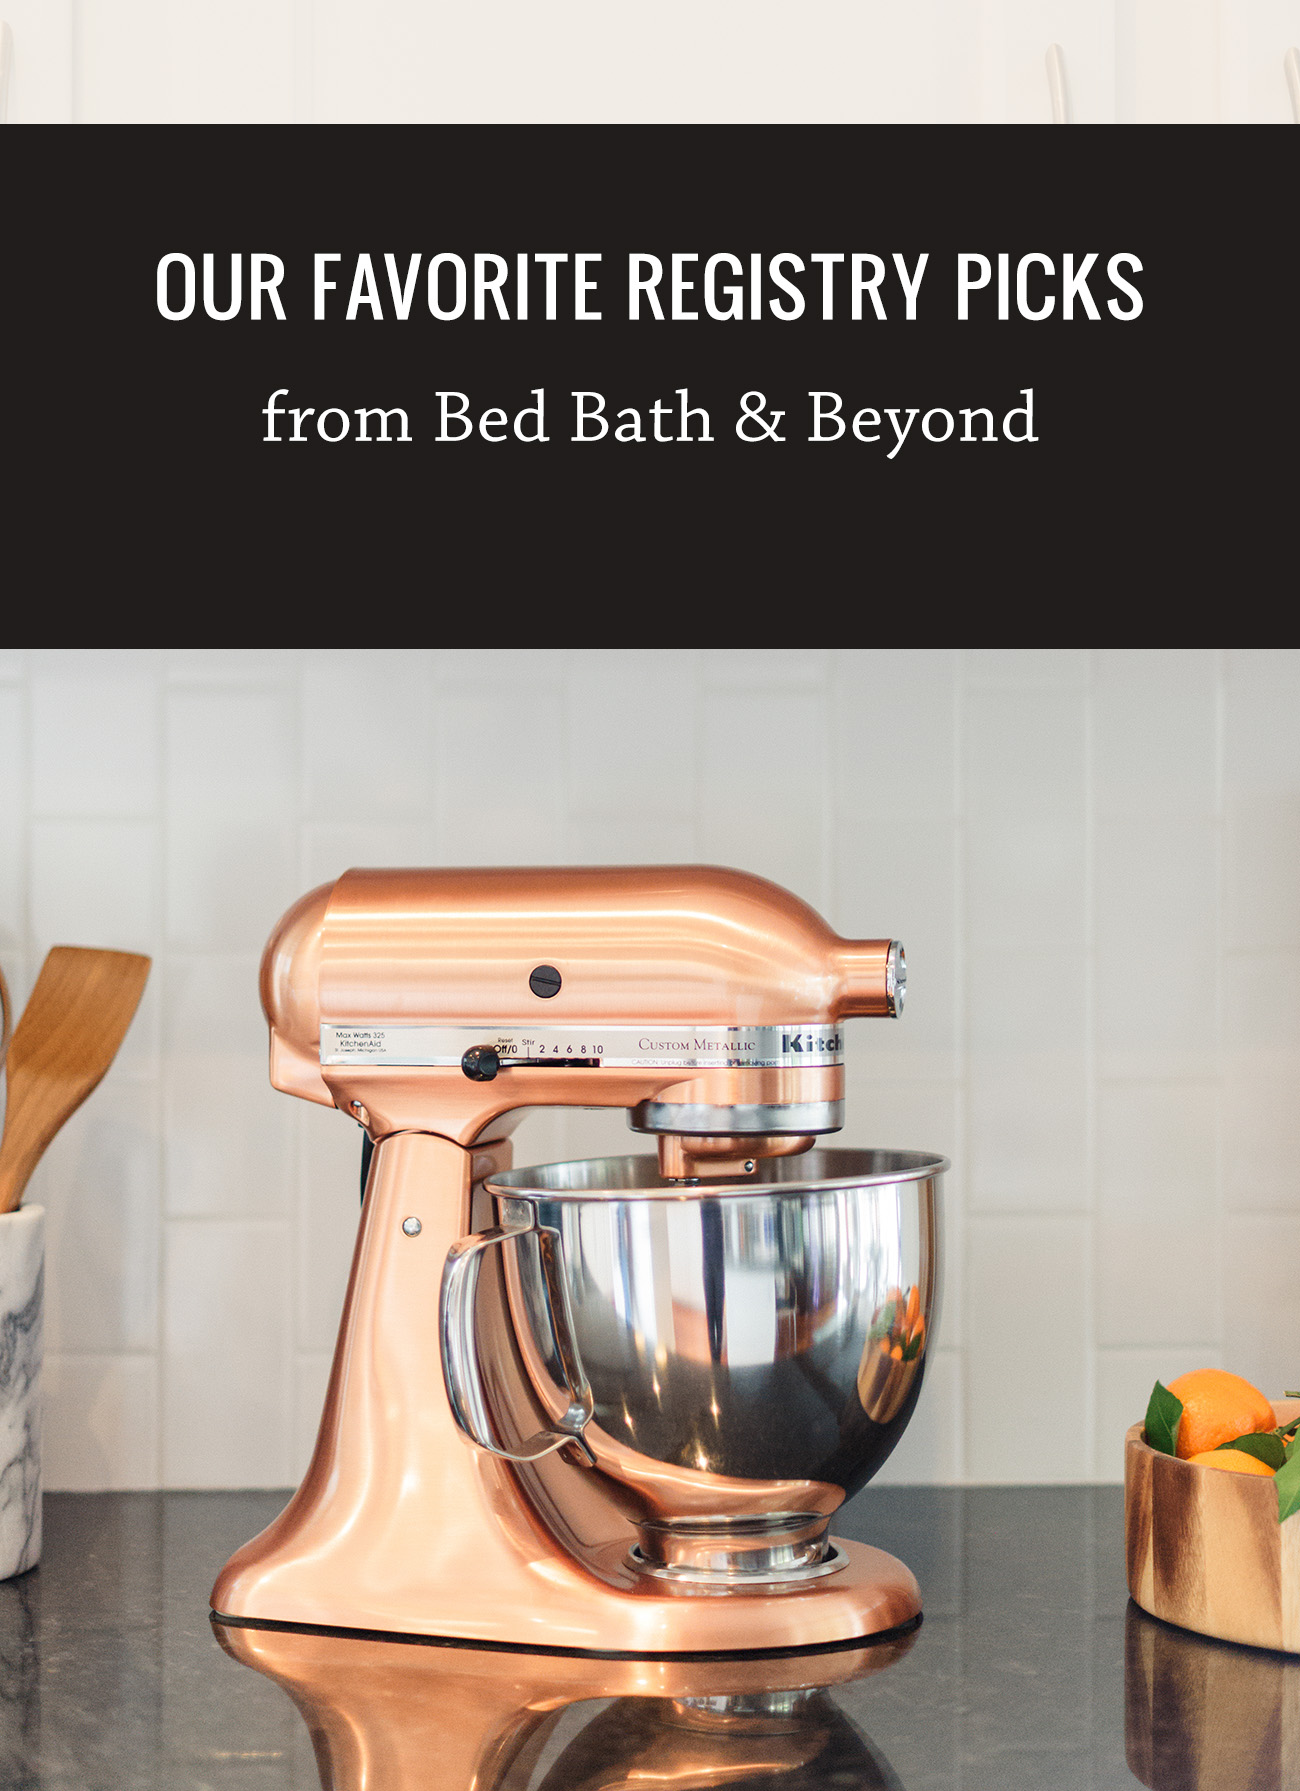 Our Favorite Registry Picks from Bed Bath & Beyond